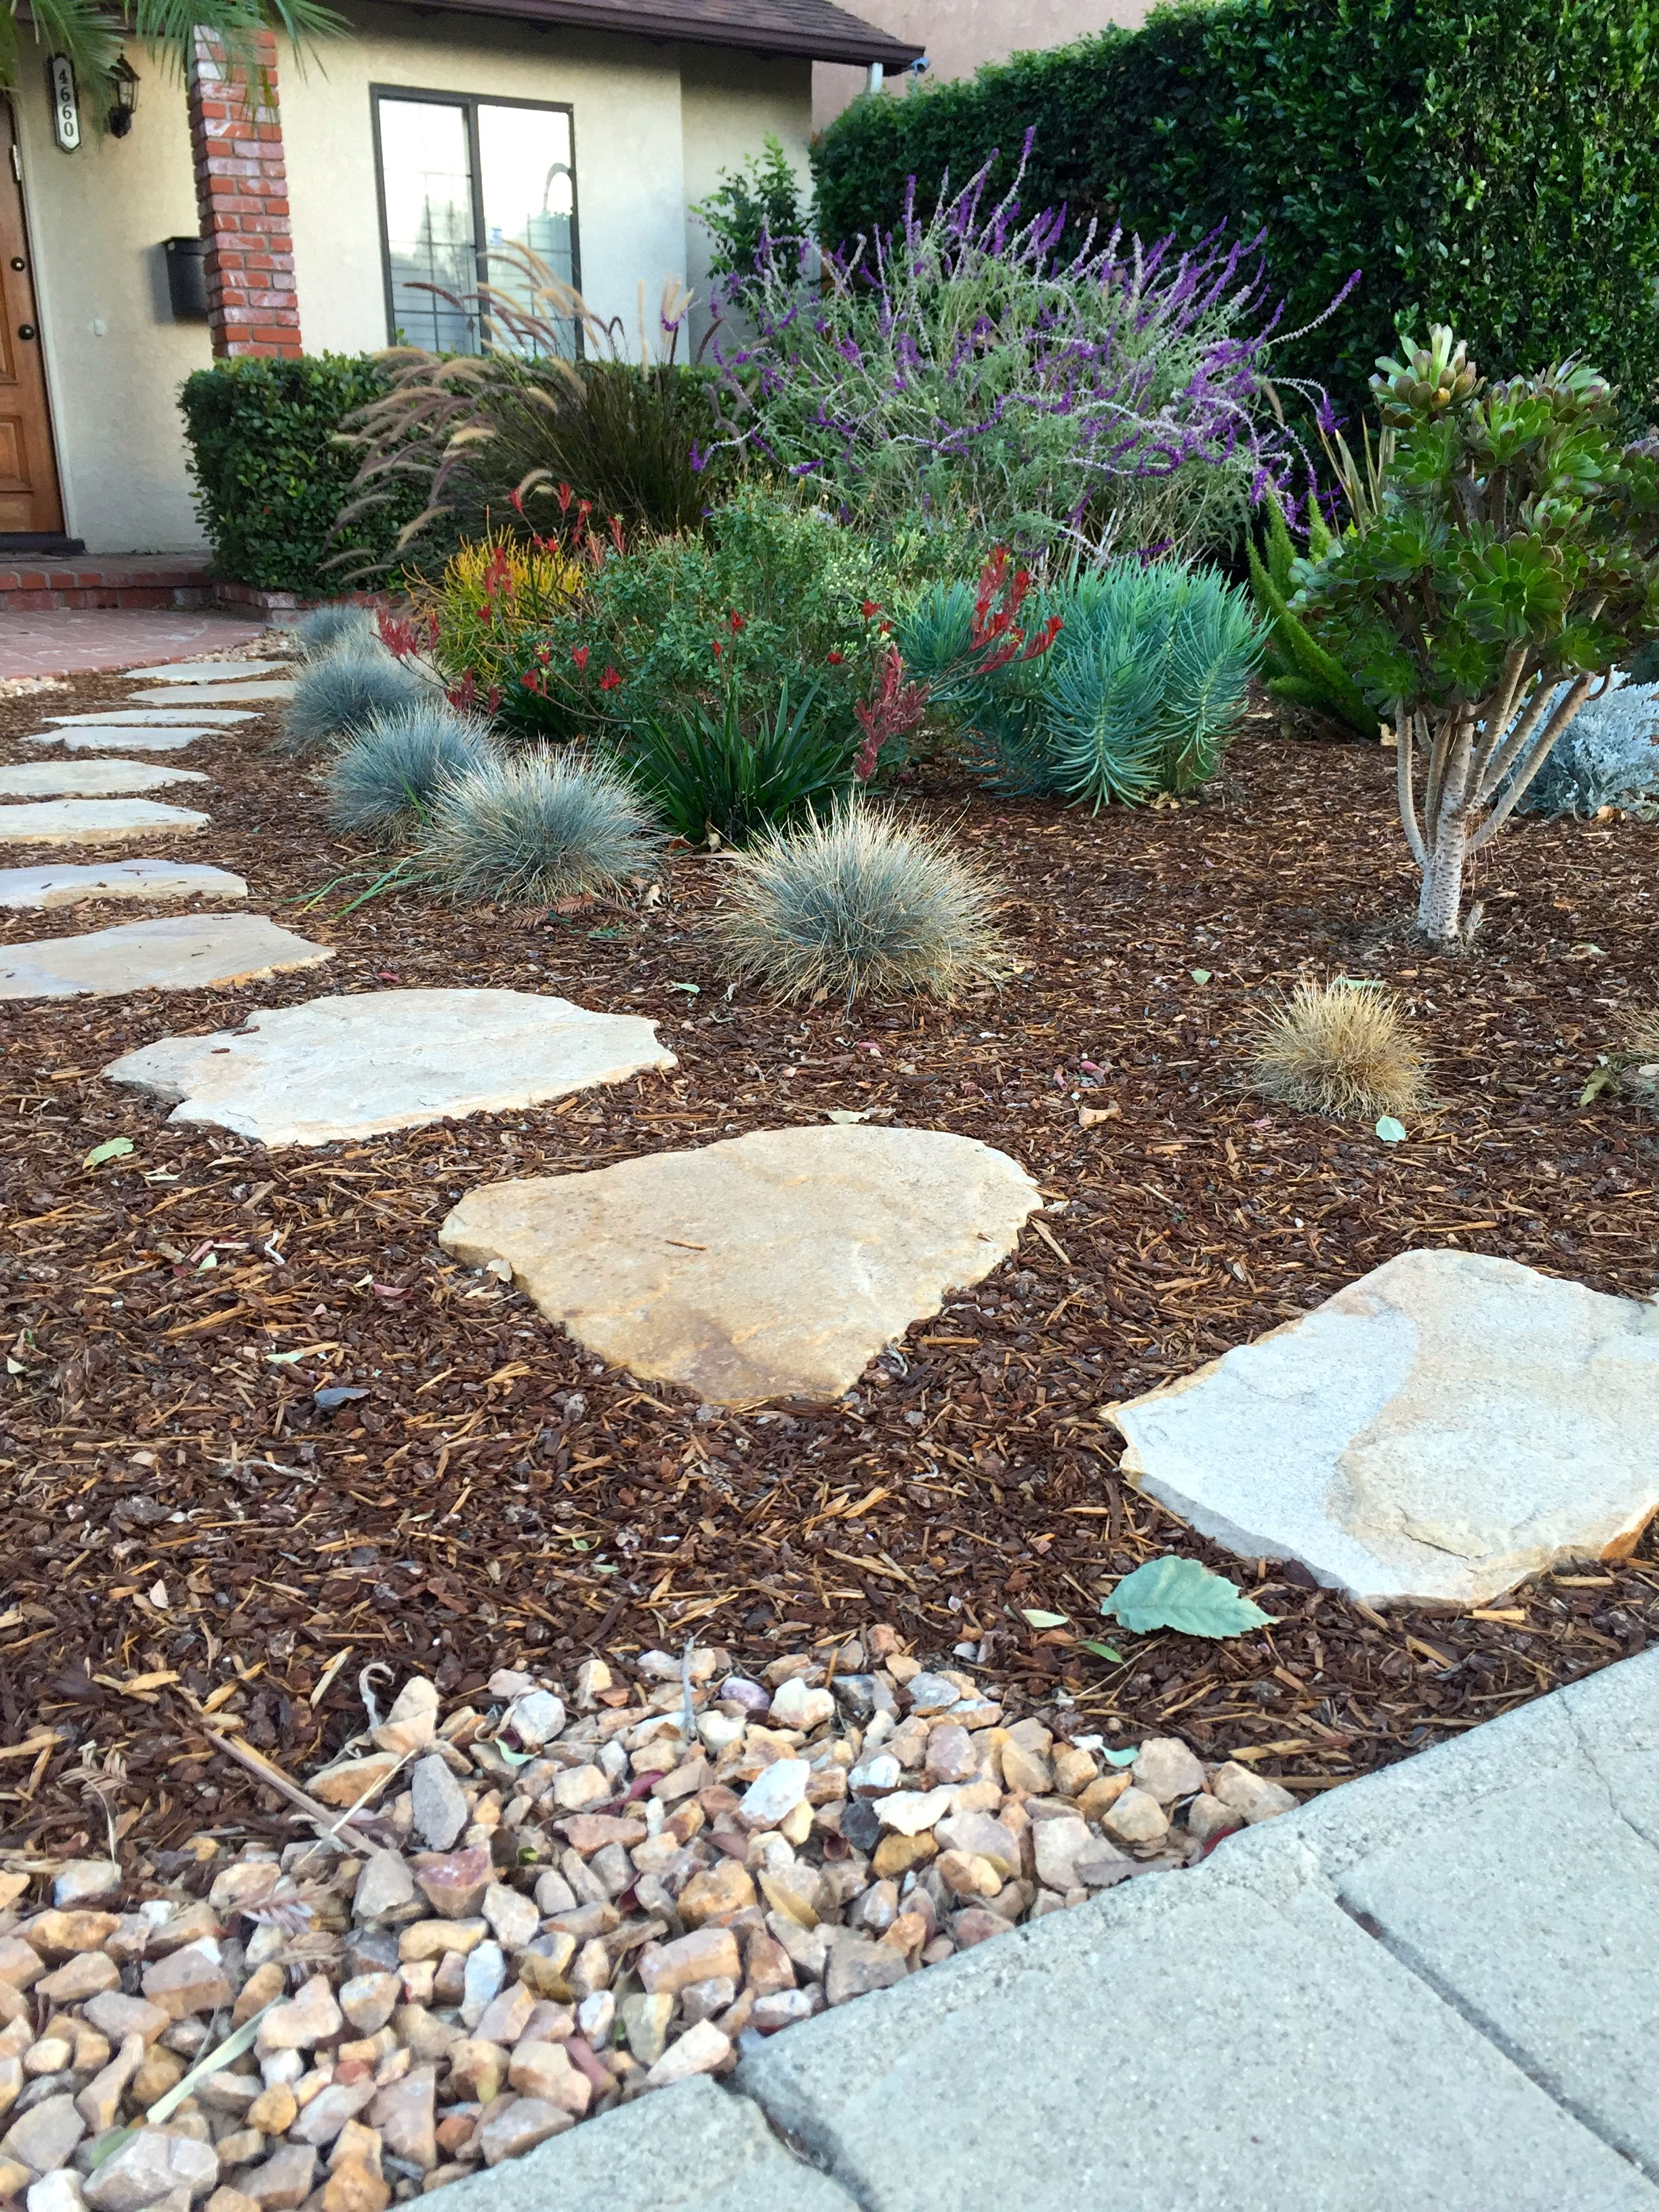 Paving stone pathway surrounded by mulch bark and for Large bushes for landscaping